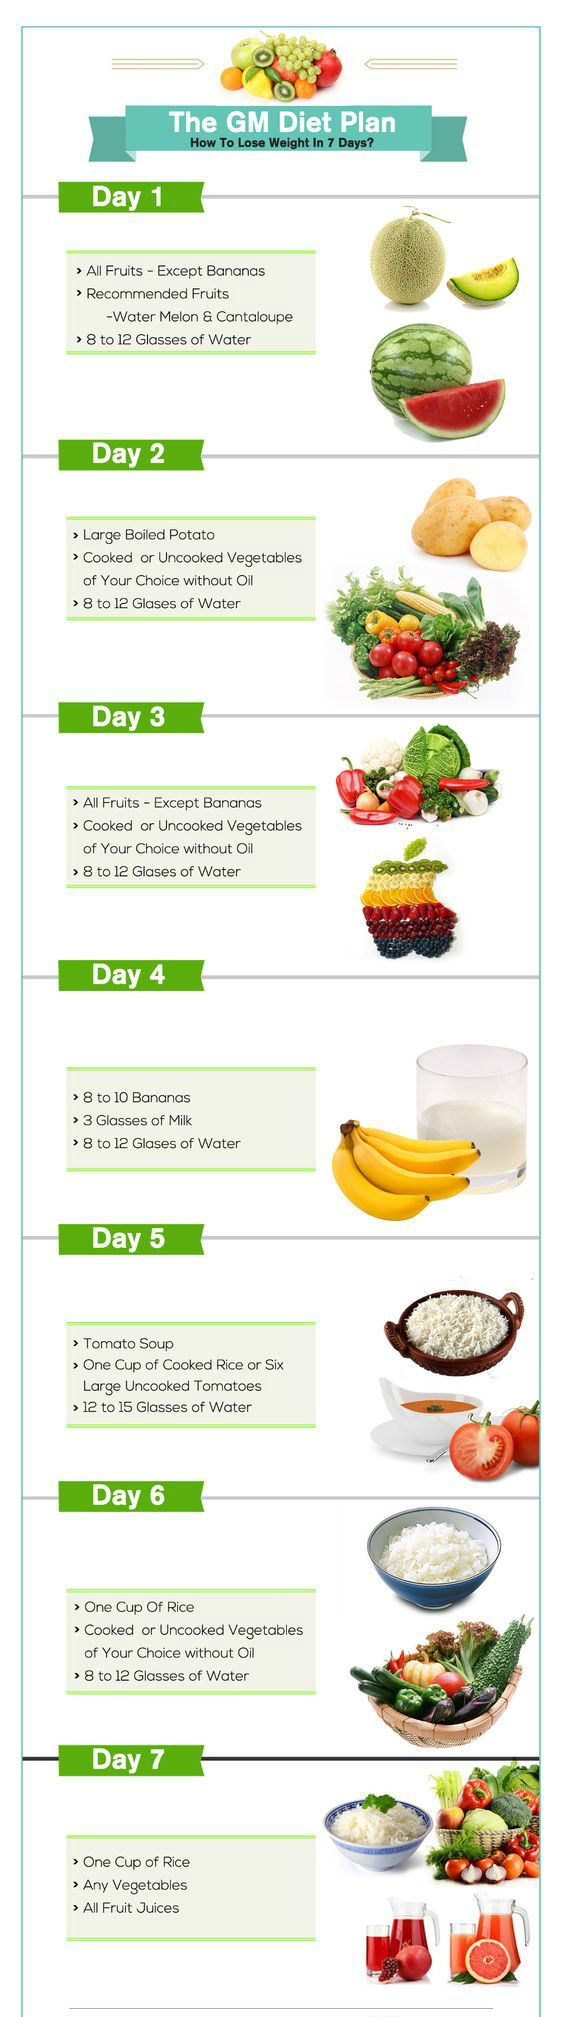 Gm diet chart find the gm diet plan pdf printable version free gm diet chart find the gm diet plan pdf printable version free download general motors diet aka gm diet chart helps you lose weight without exercise ccuart Choice Image